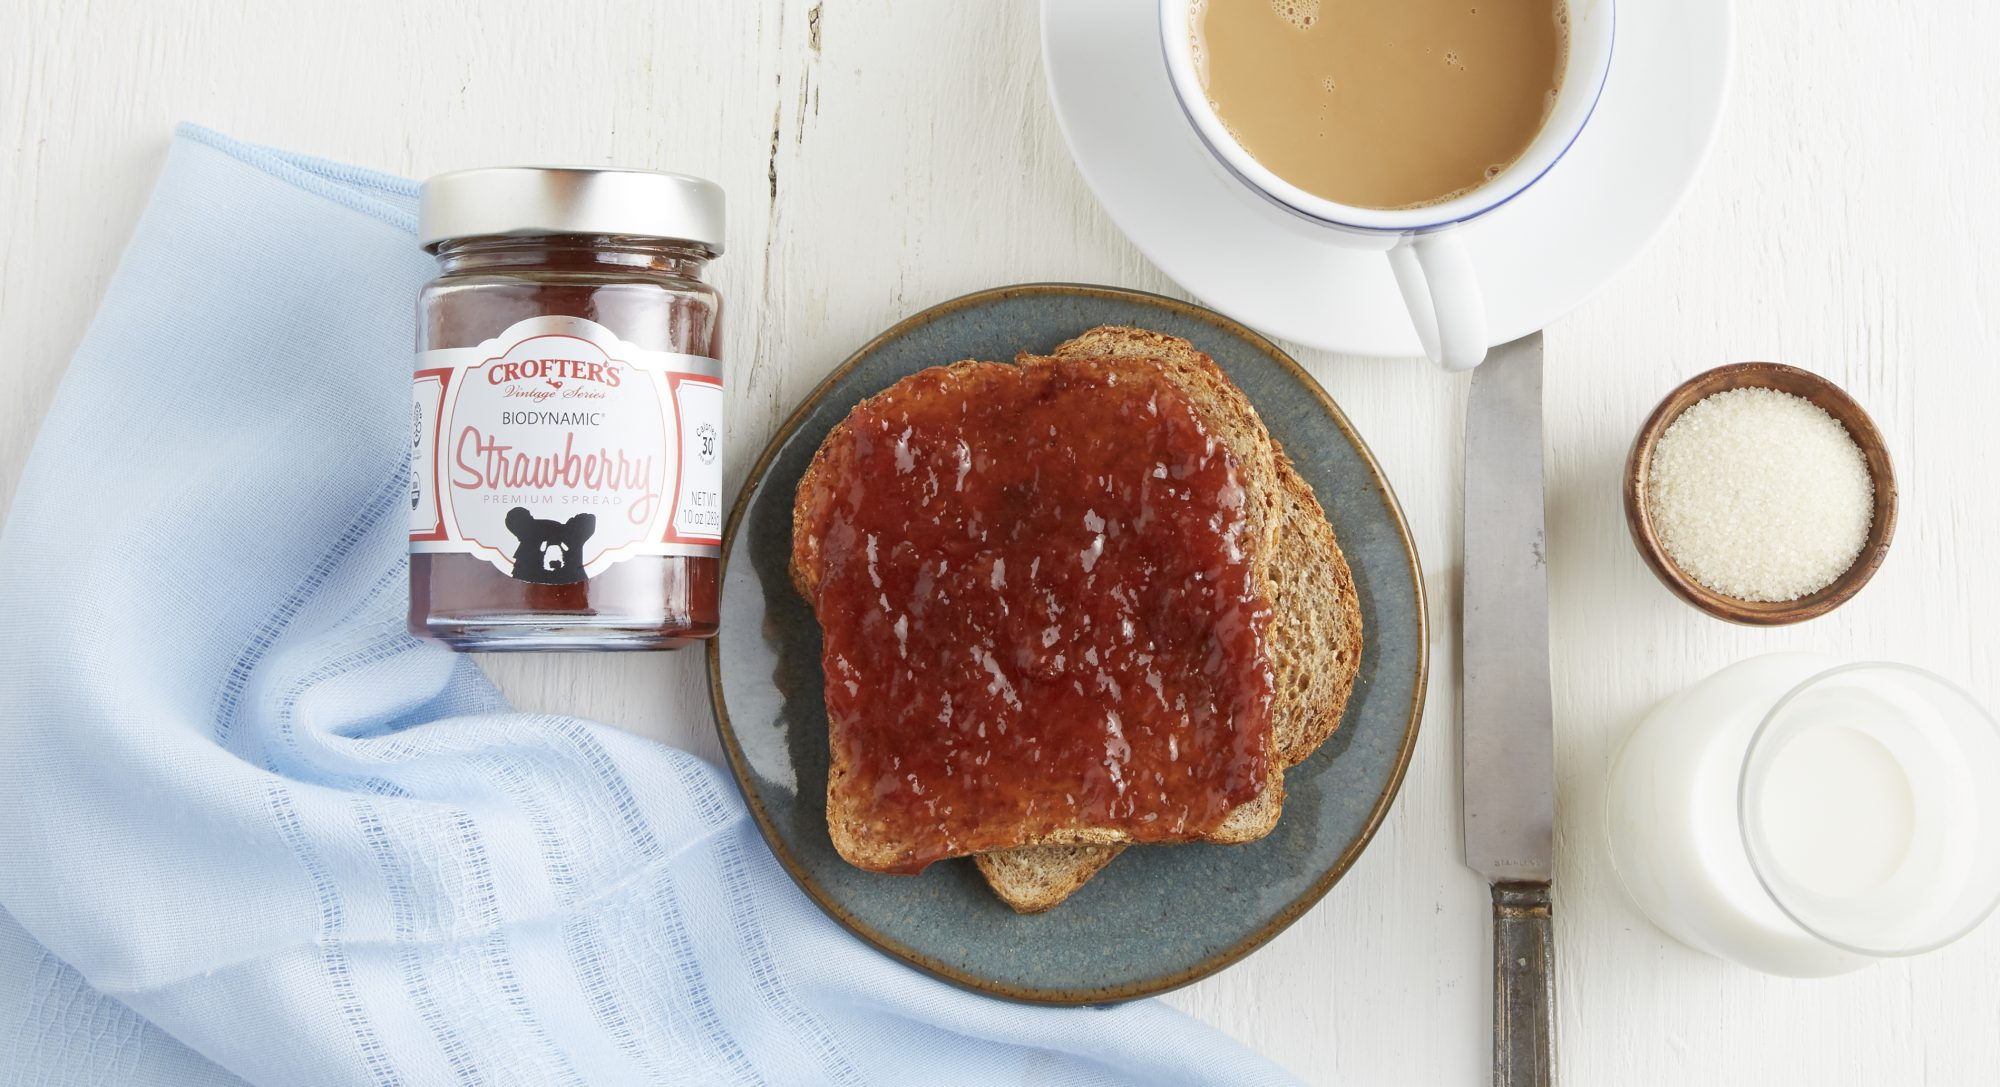 If Sustainable Farming and Fruity Flavor Are Your Jam, You'll Love These Spreads from Crofter's Organic